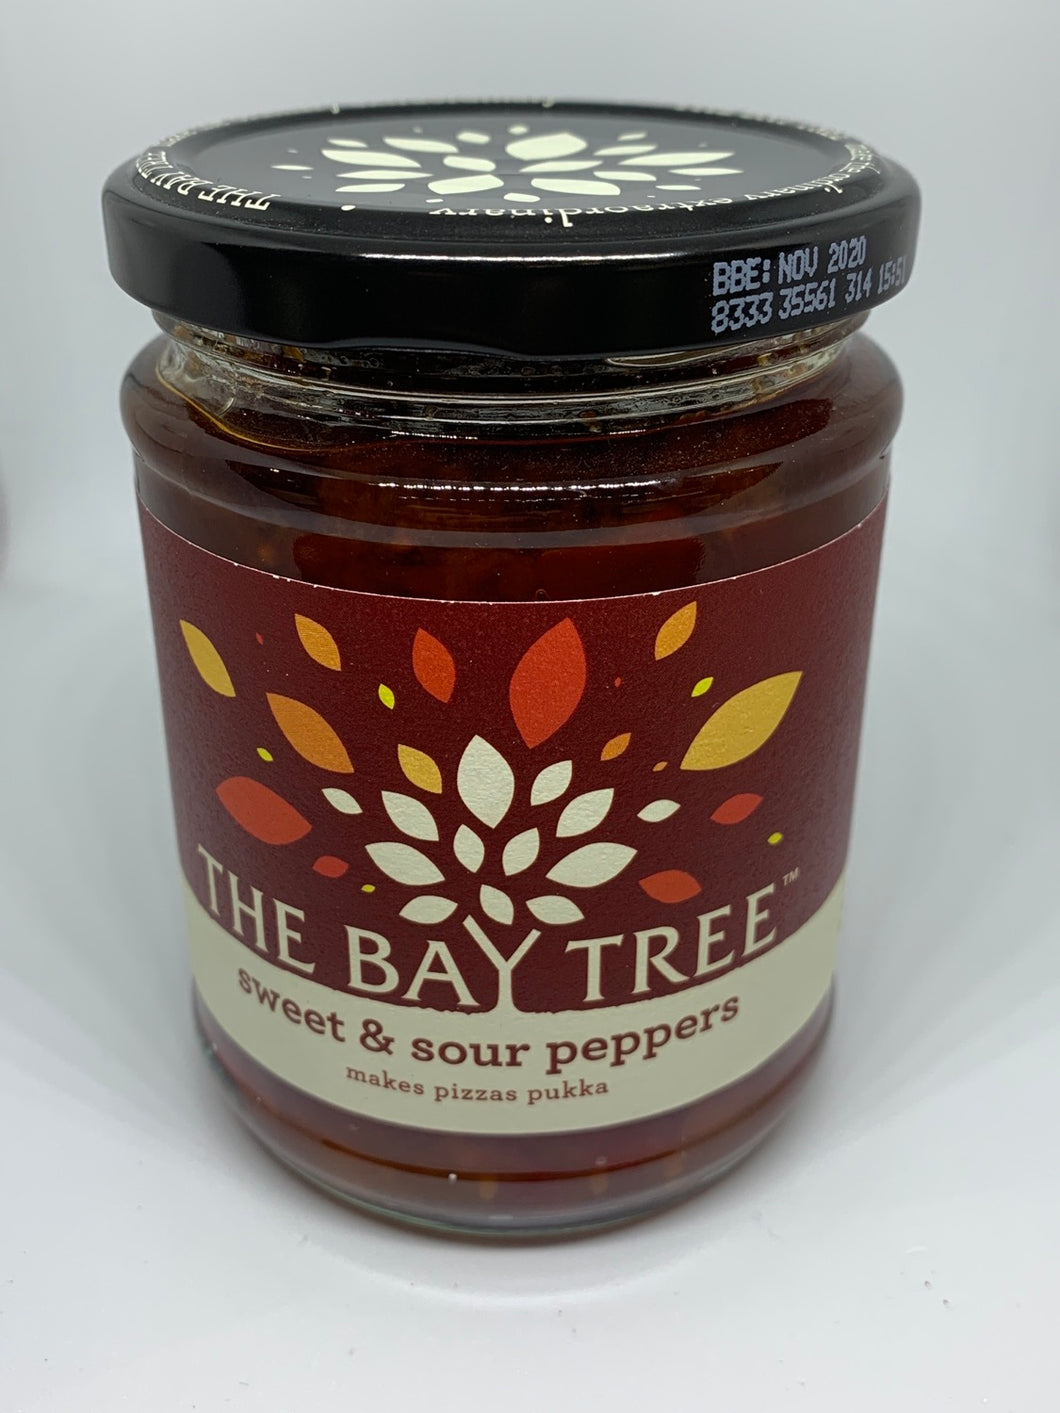 The Bay Tree Sweet & Sour Peppers 300g